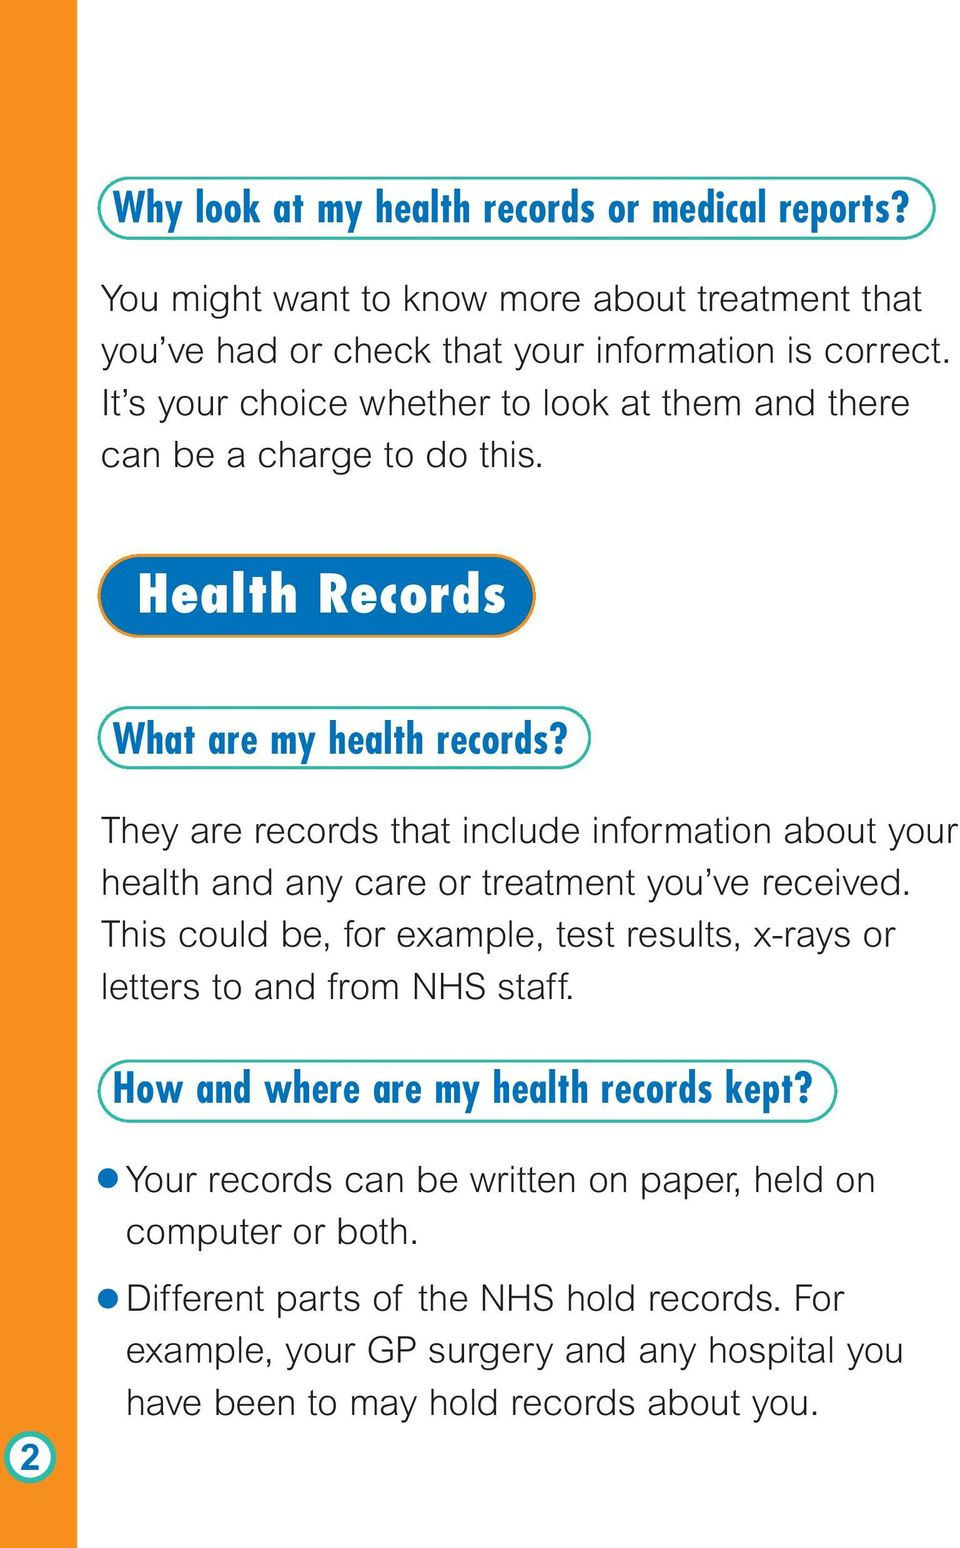 They are records that include information about your health and any care or treatment you ve received.